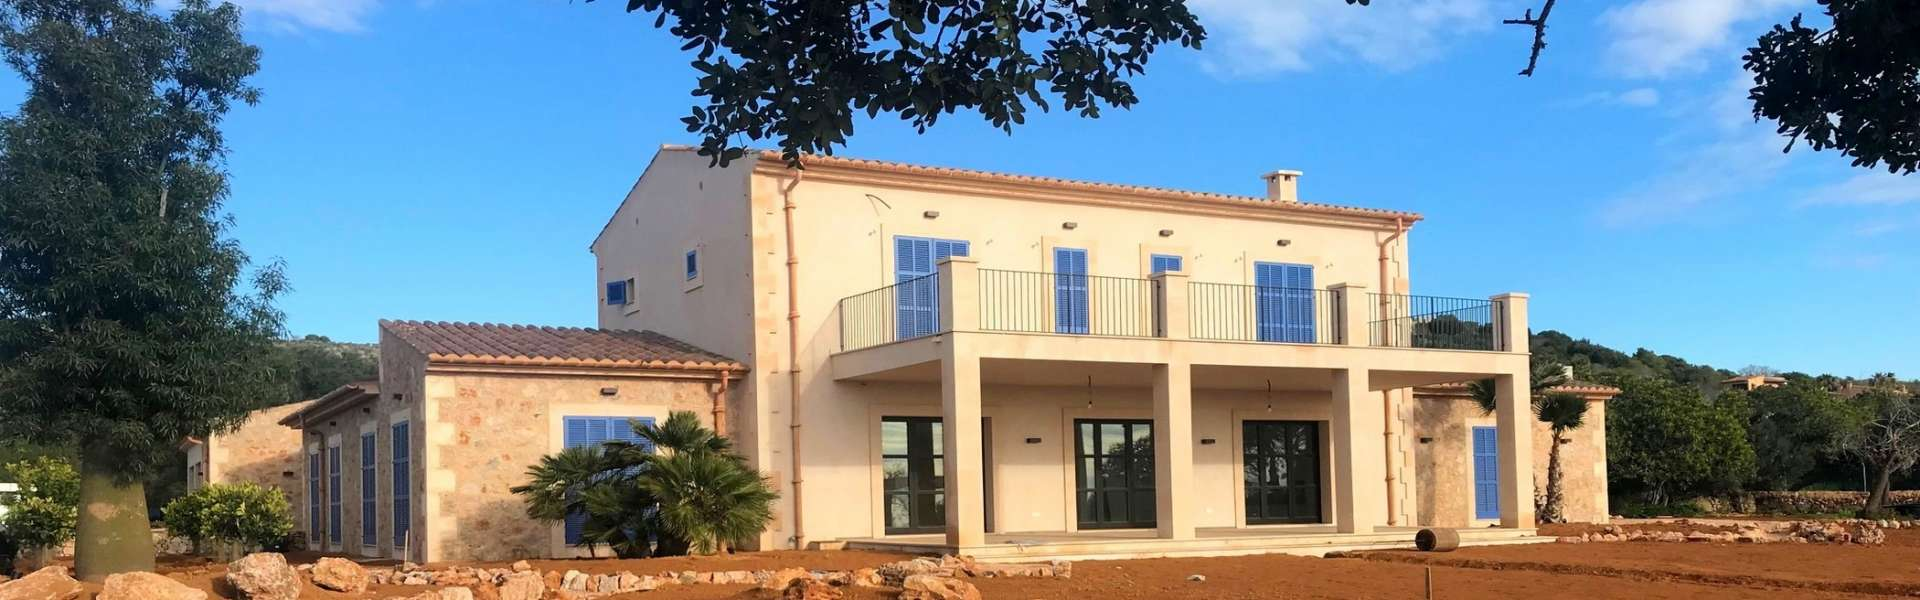 New building project in Son Punta between Alqueria Blanca and Santanyi